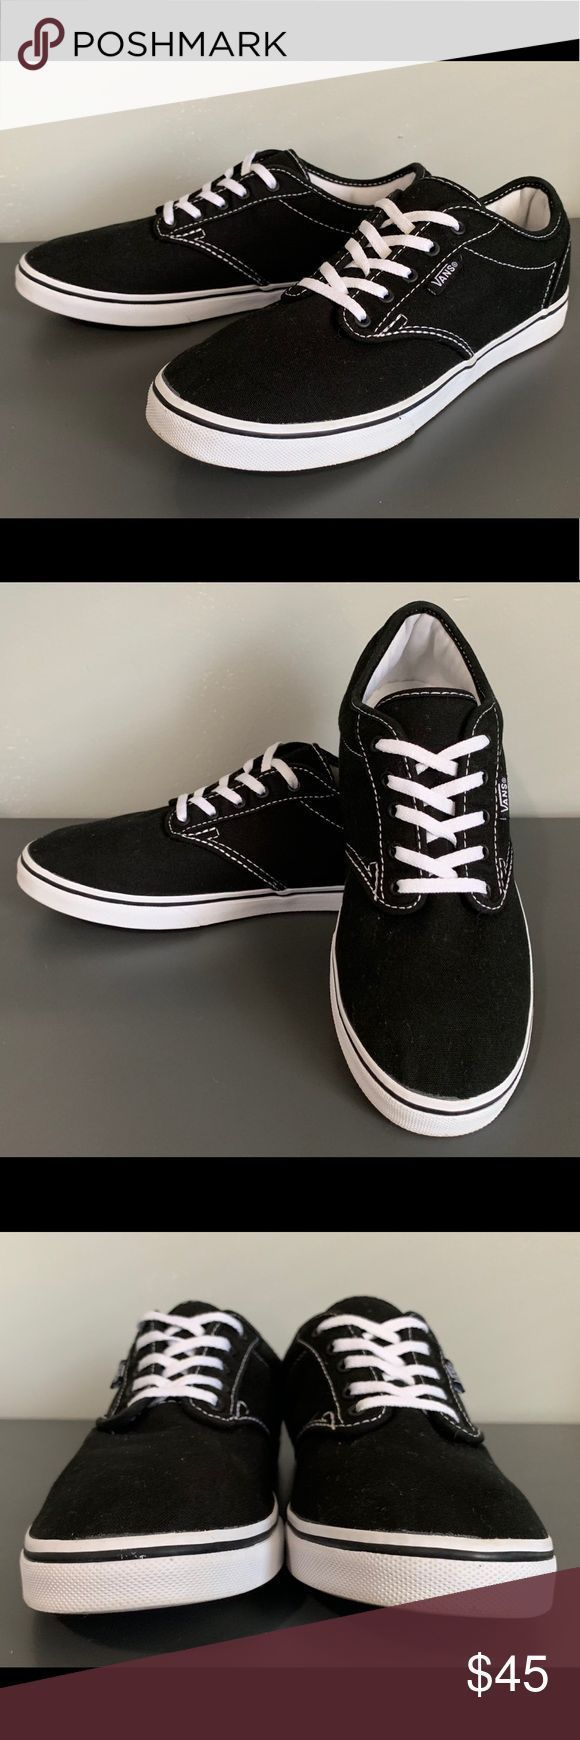 vans atwood nere donna